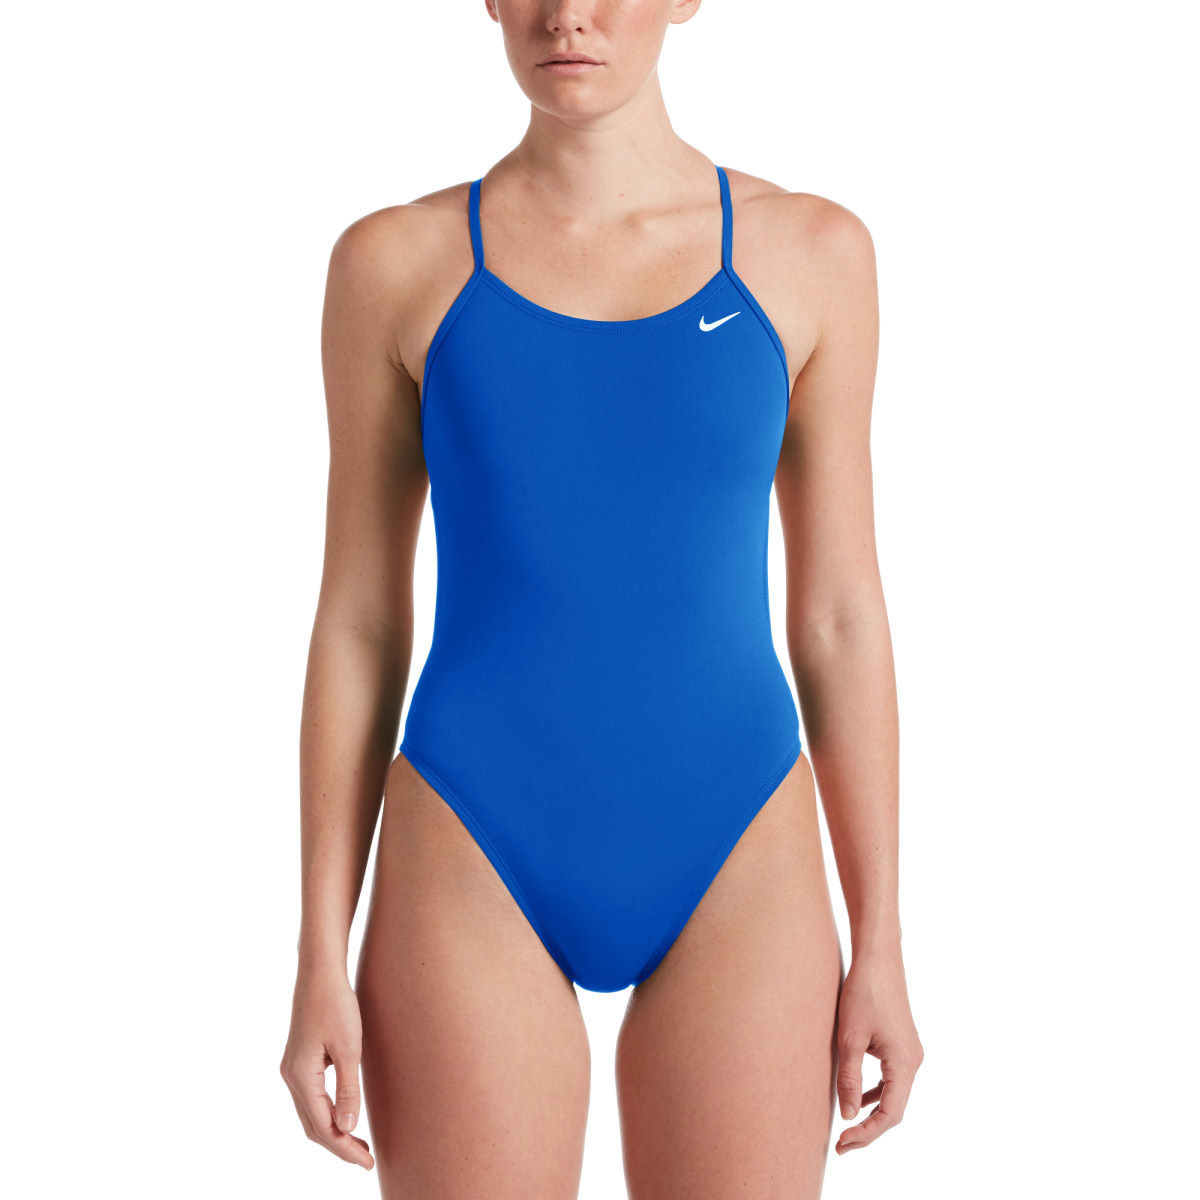 Nike Womens Hydrastrong Swimsuit (cutout) - 26 494 Game Royal